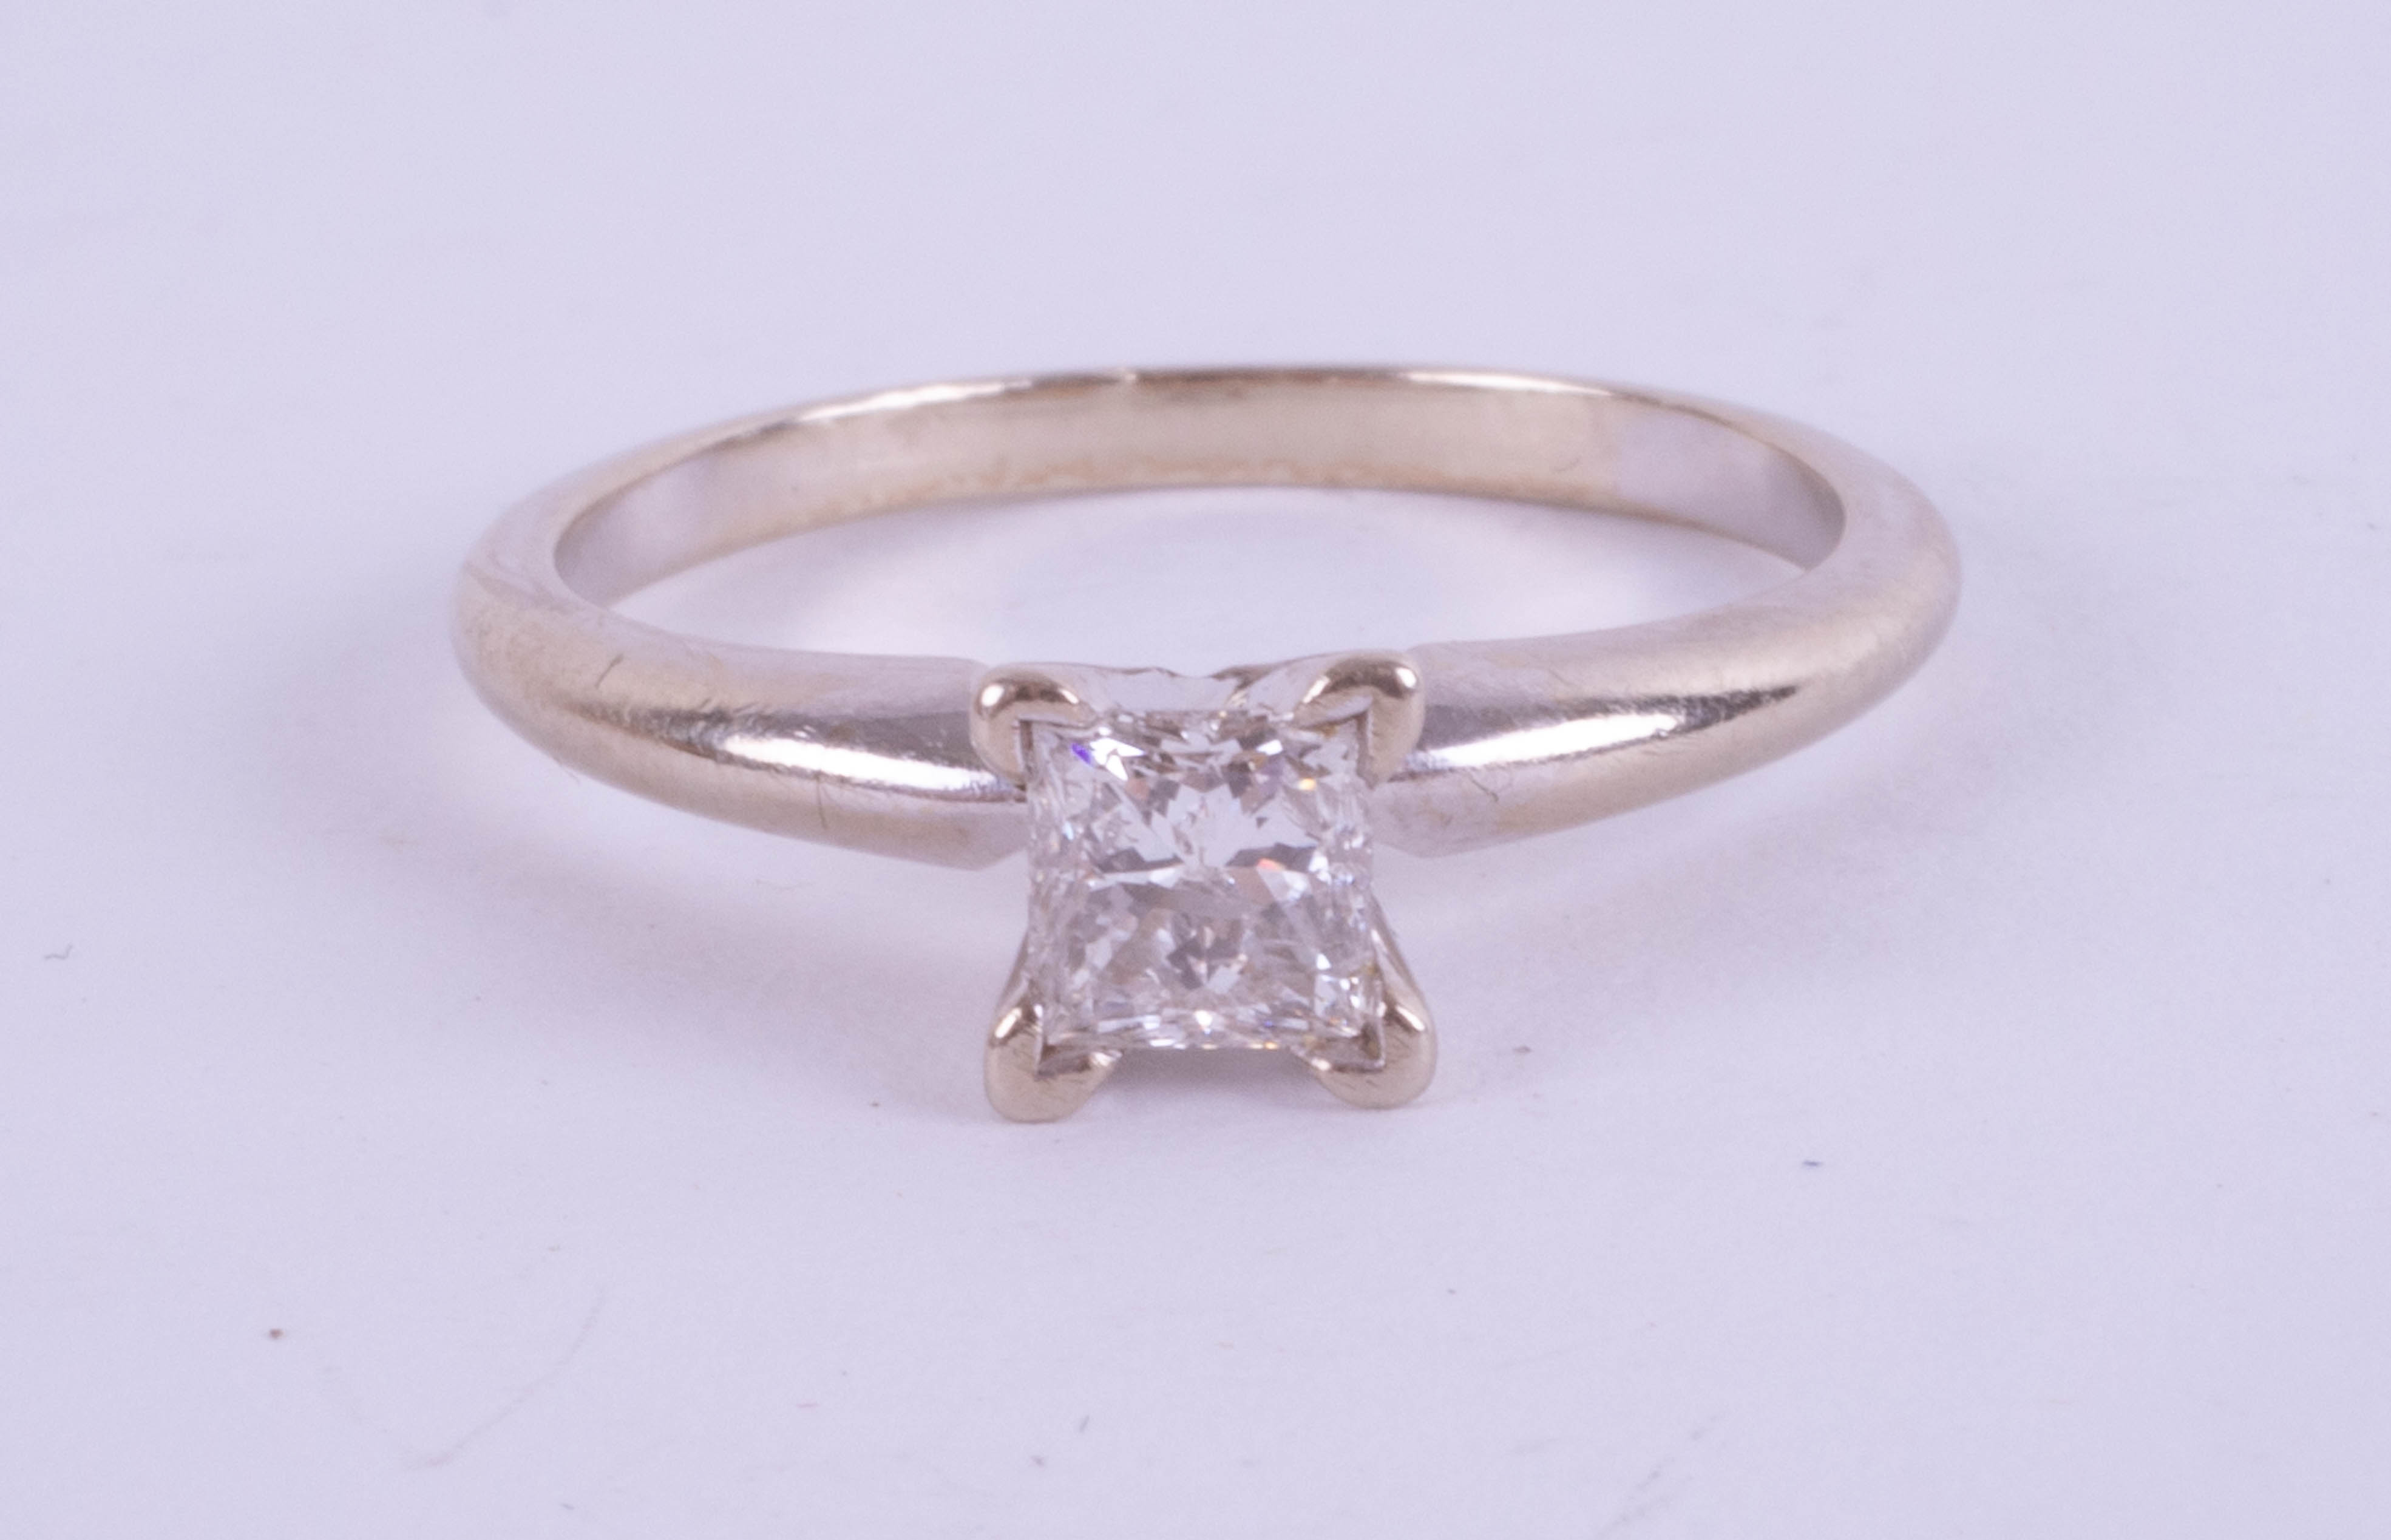 An 18ct white gold princess cut diamond ring, approx. 0.45ct, ring size I.